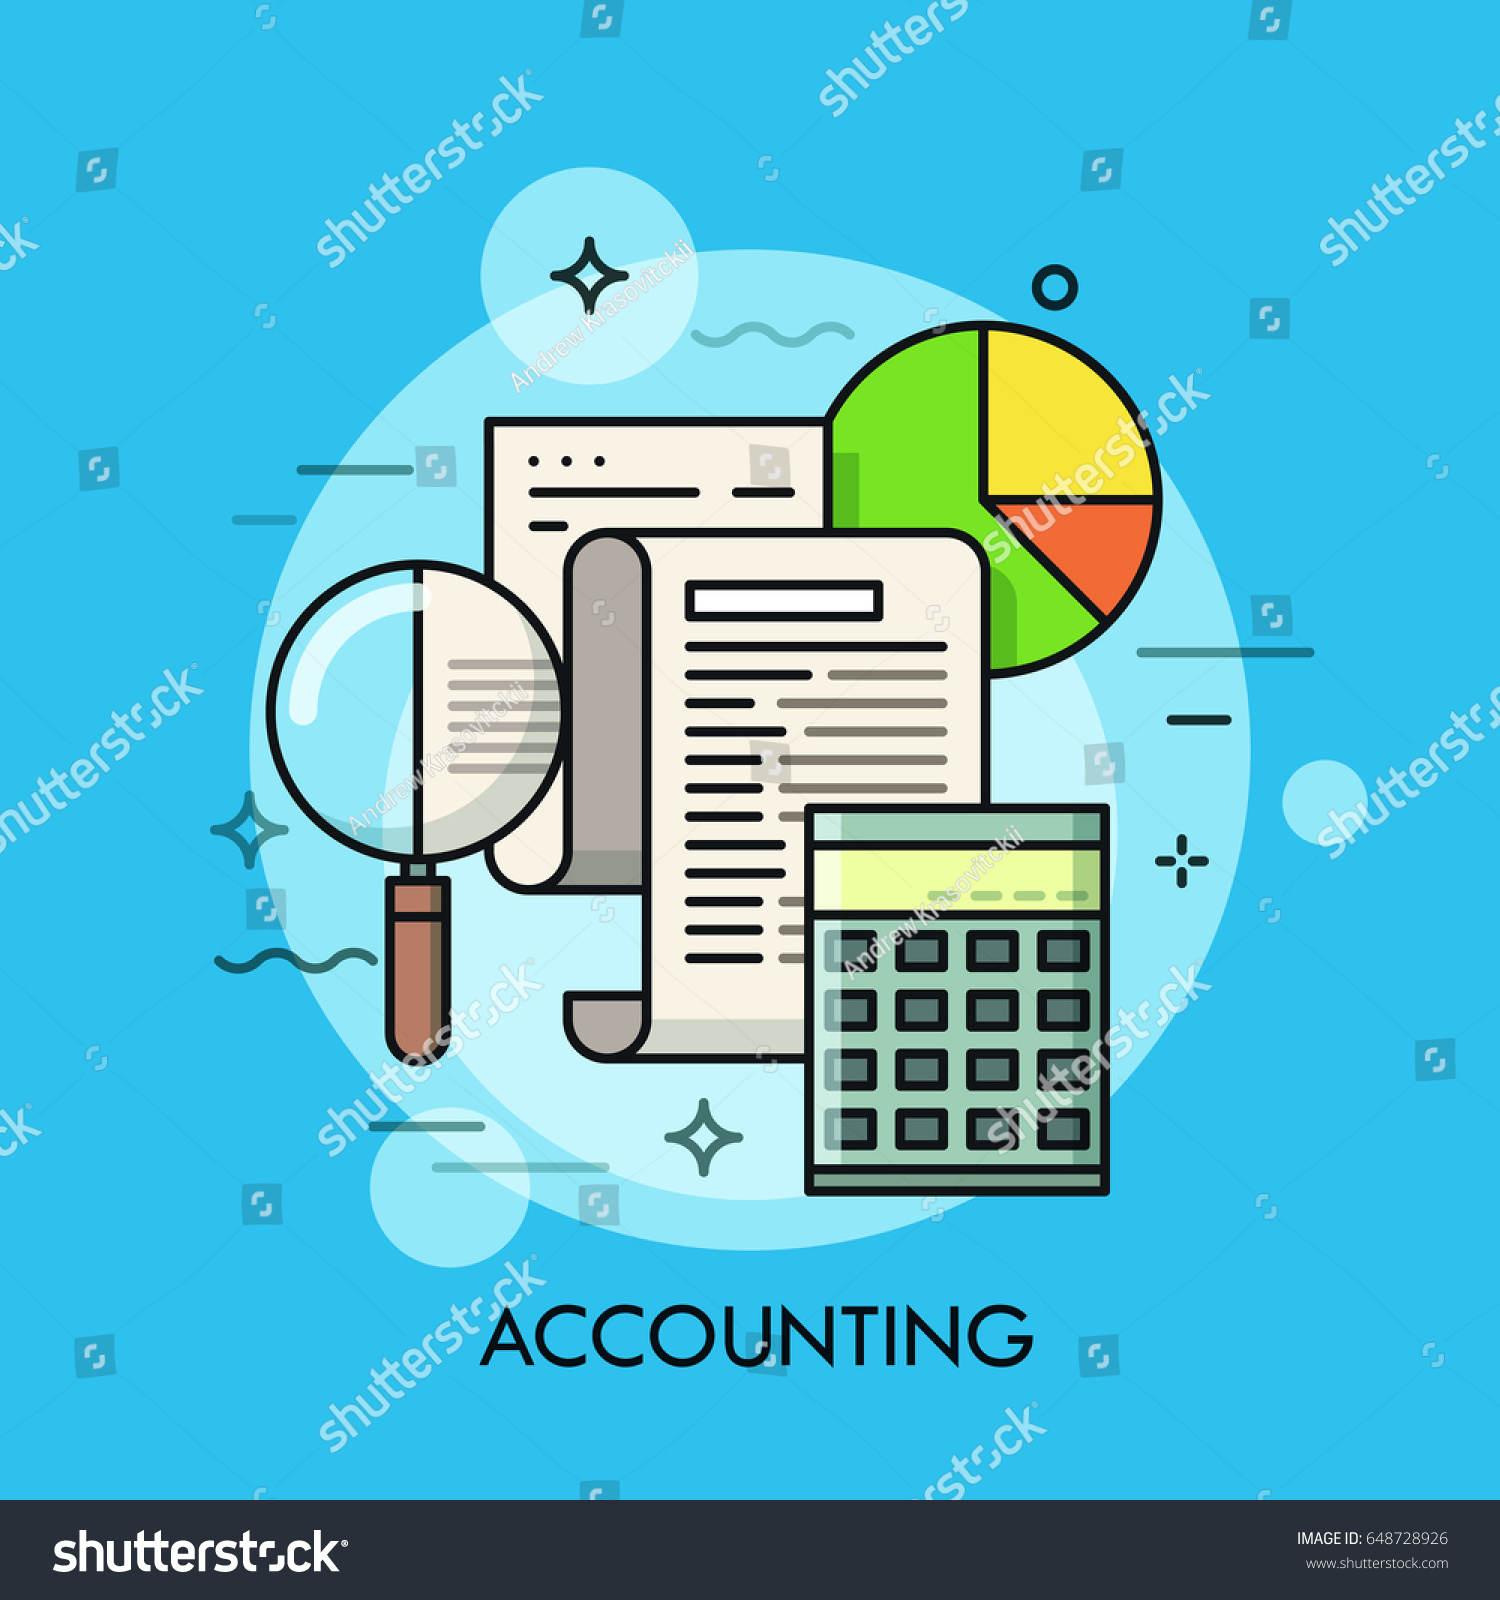 Paper document magnifying glass calculator pie stock vector paper document magnifying glass calculator and pie chart accounting and auditing service nvjuhfo Choice Image